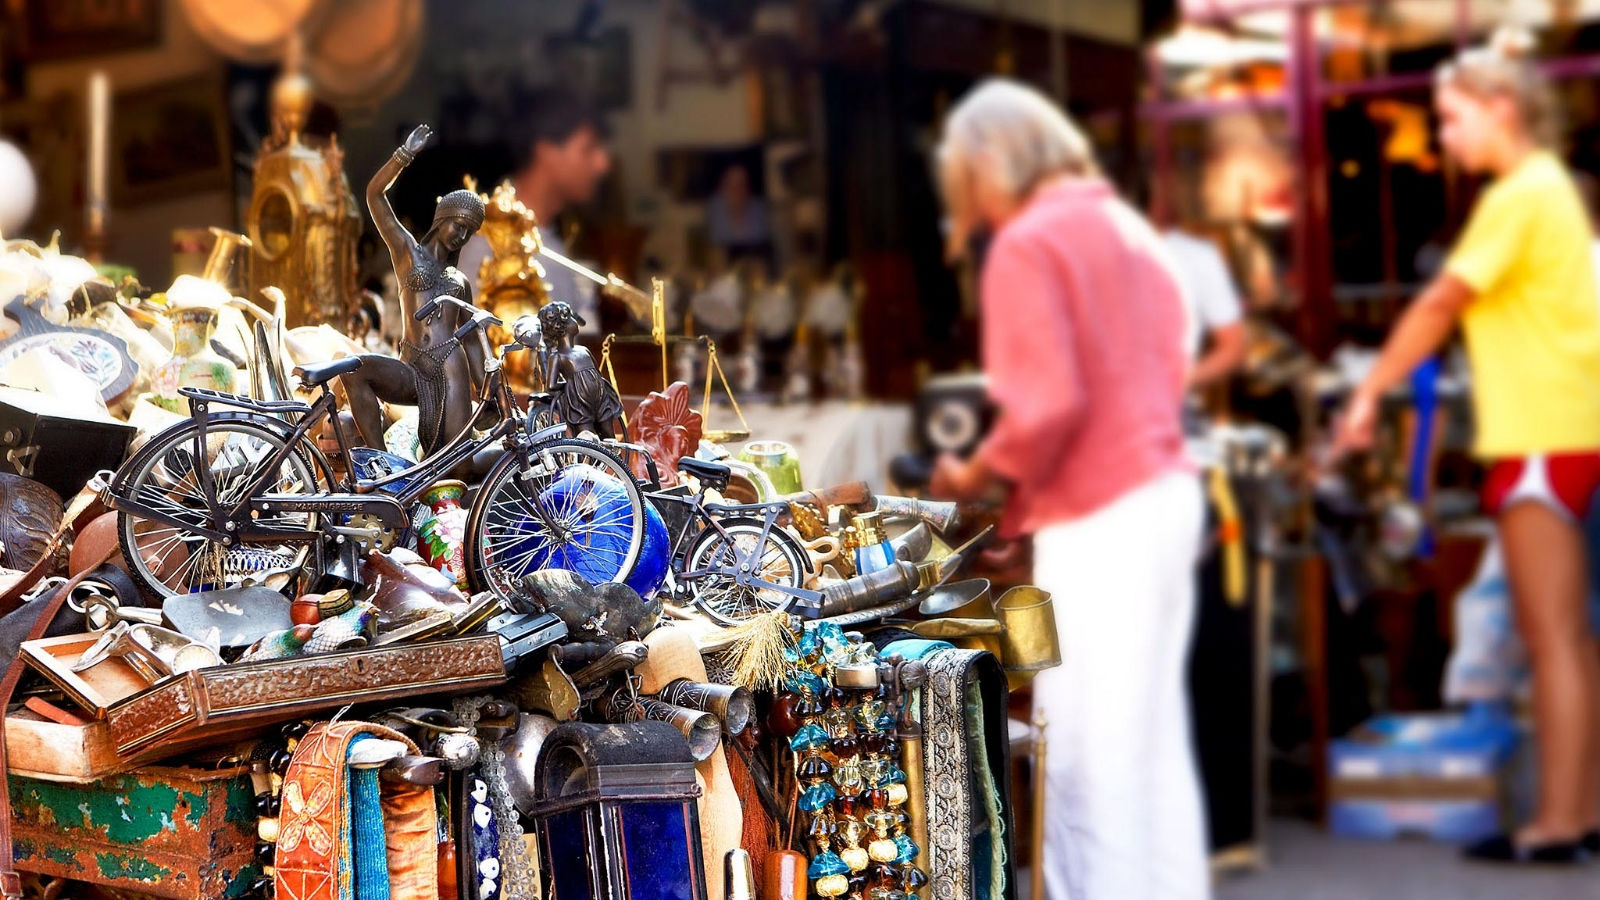 Monastiraki Flea Market recommended by the concierge of Hotel Grande Bretagne